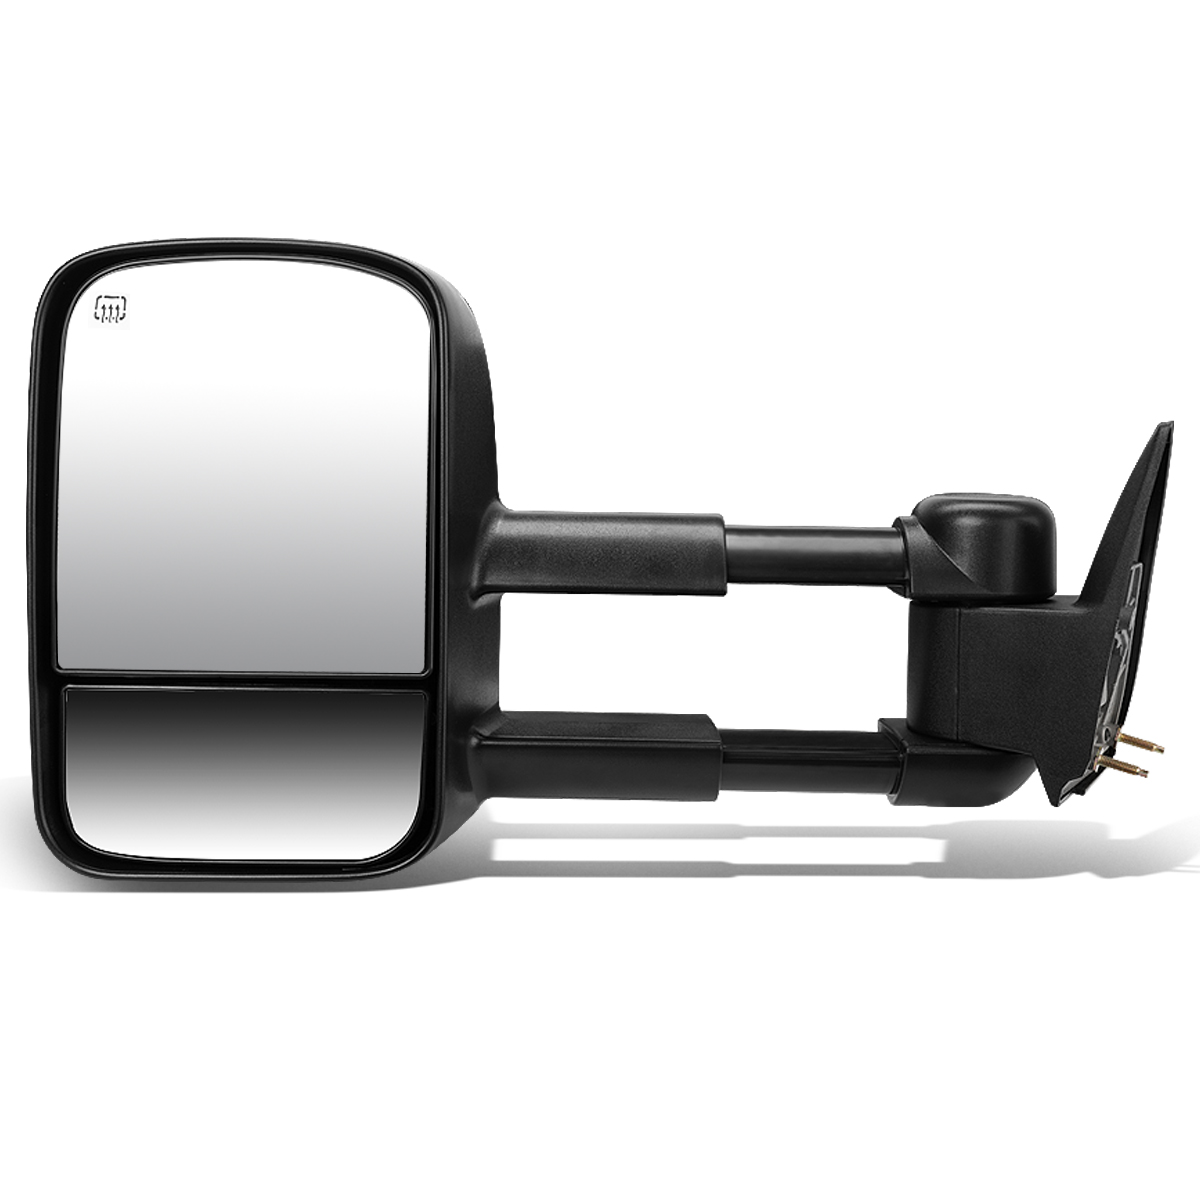 For 2003-2007 Chevy Silverado/GMC Sierra Powered Adjustment+Heated Tow Towing Mirror (Left/Driver)